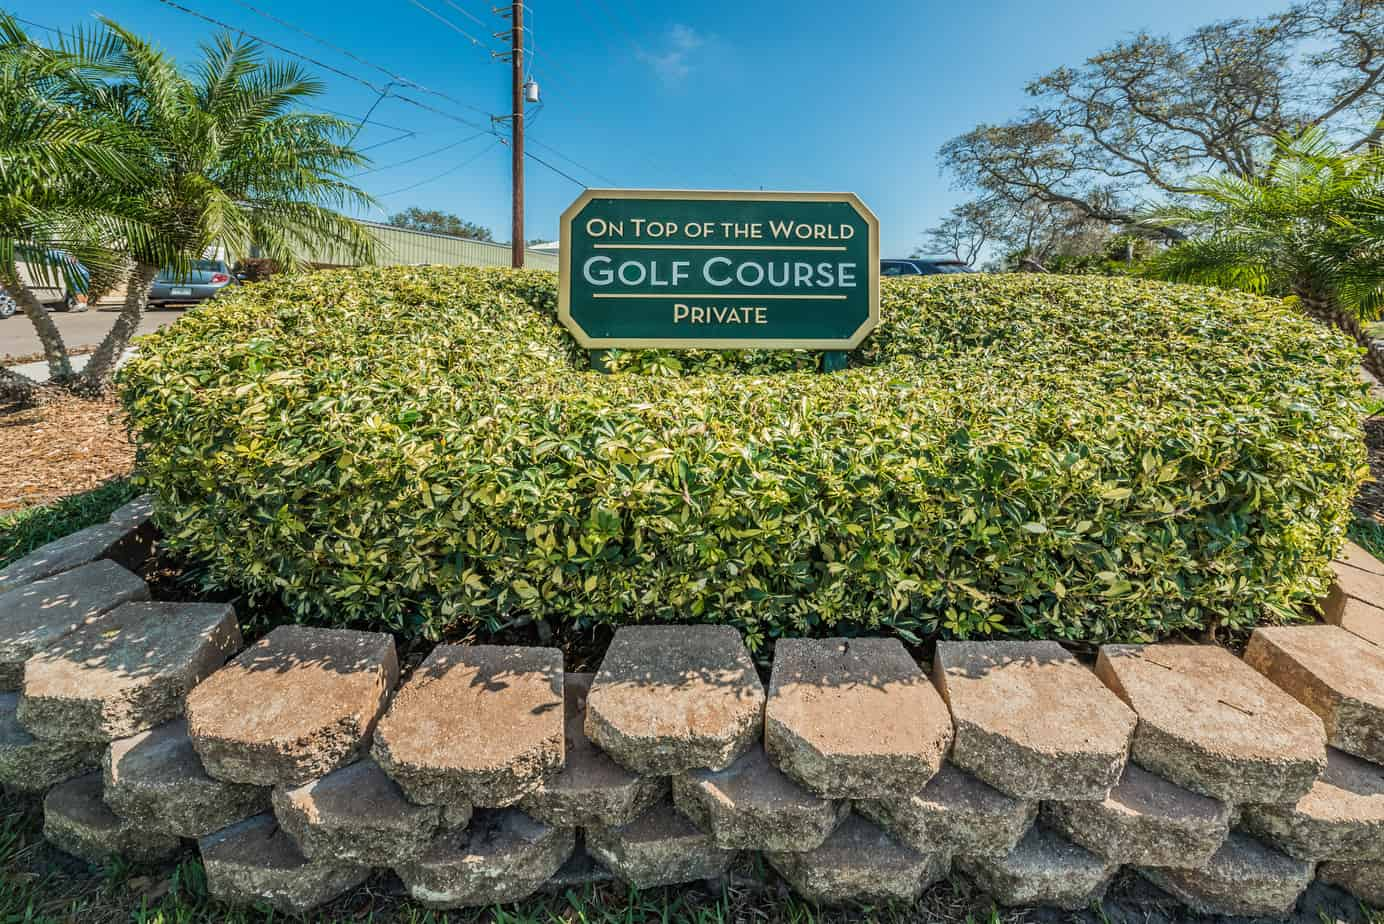 35-2285-Israeli-Dr-#17-Clearwater-Fl-33763-Golf Course1